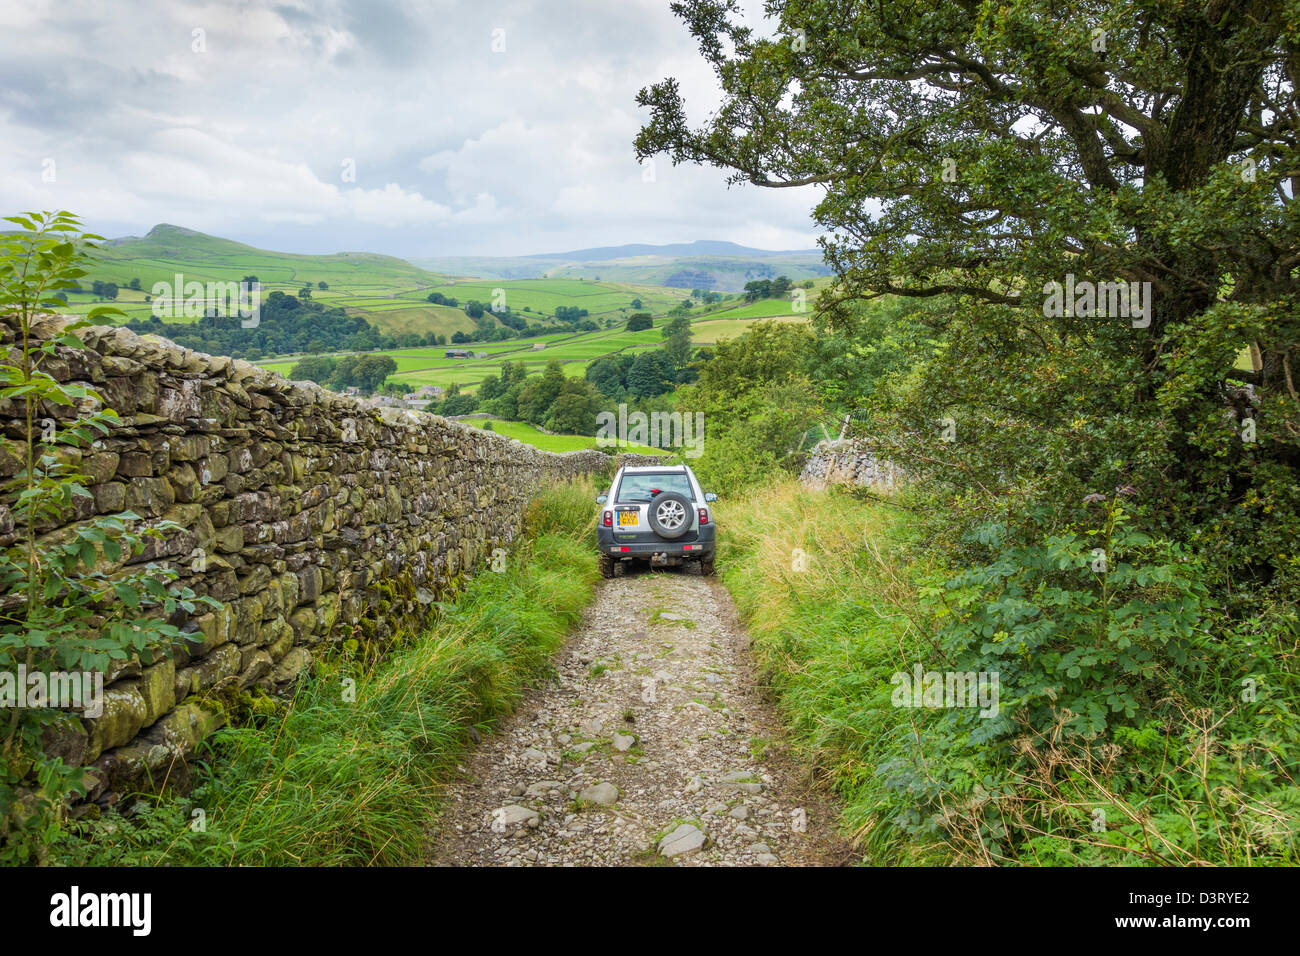 The Pennine Bridleway route near Stainforth in North Yorkshire. - Stock Image